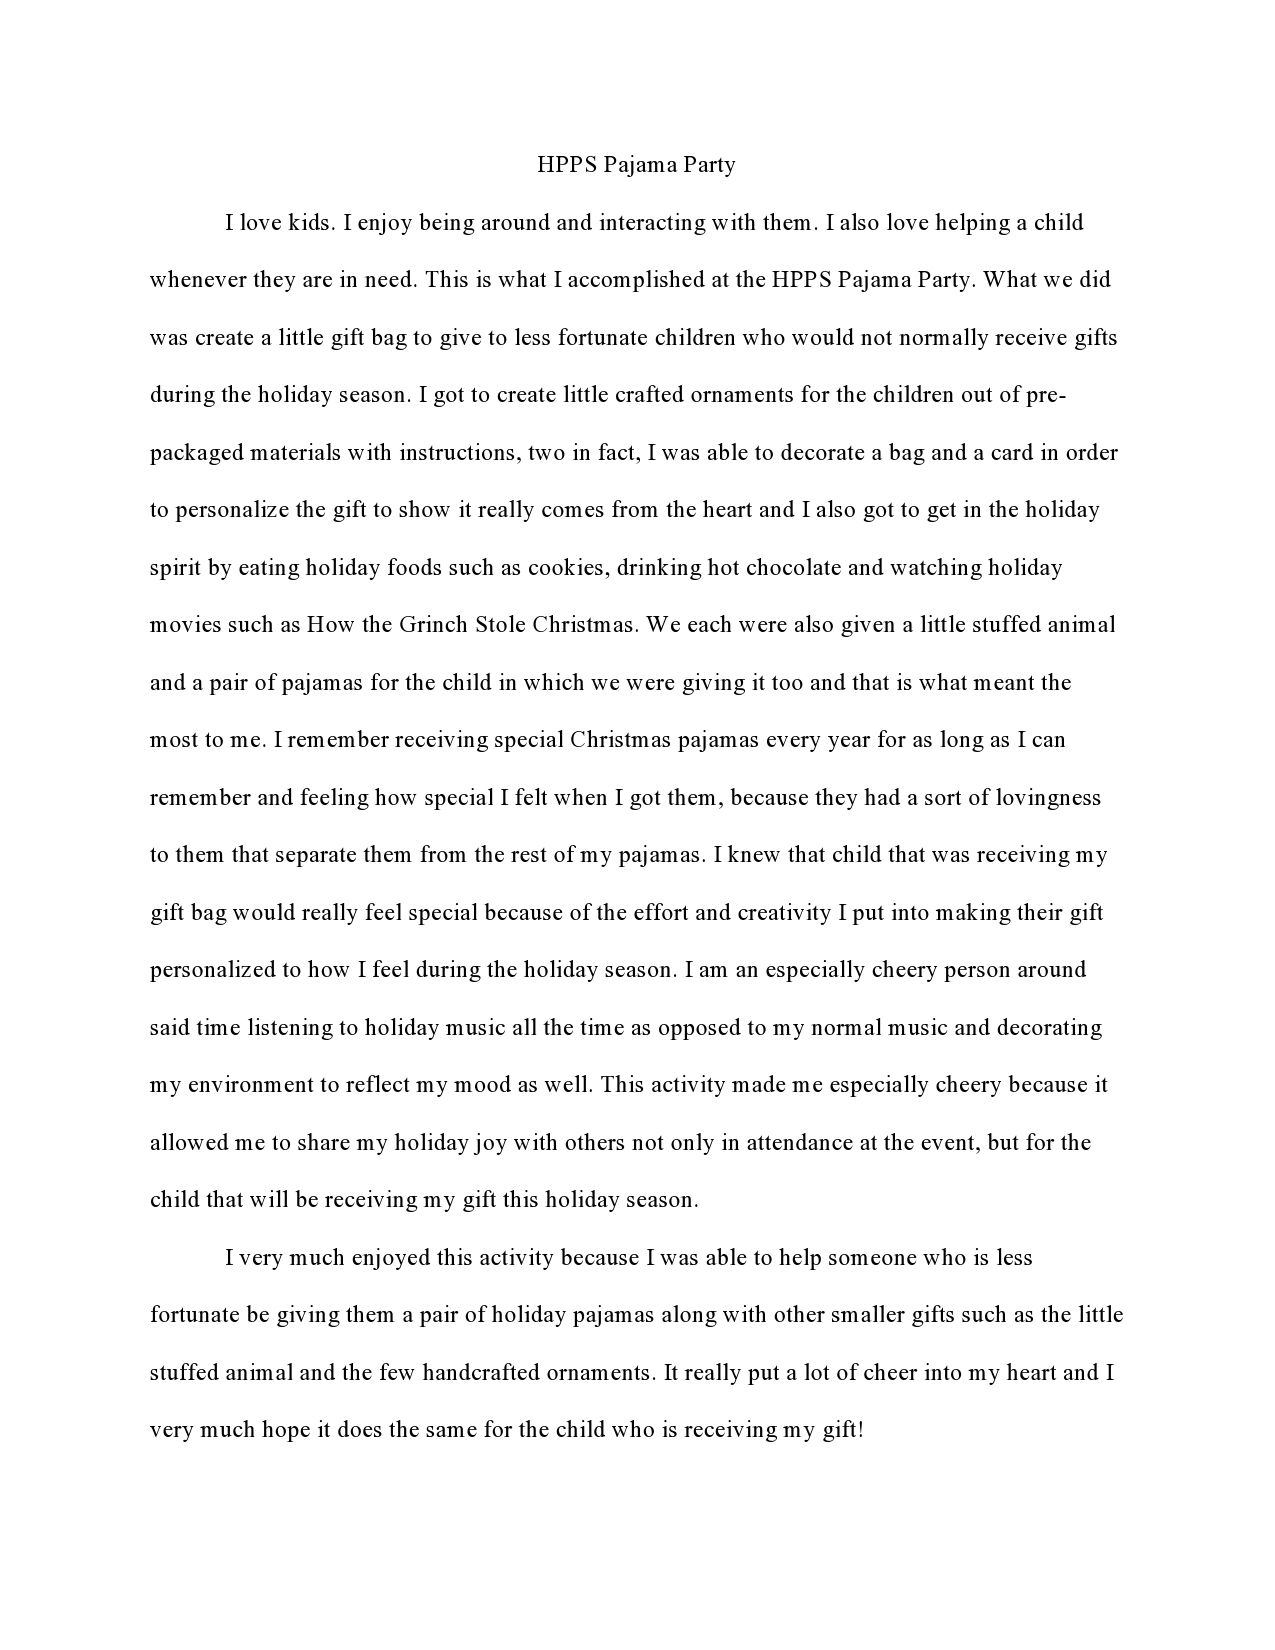 reflection sample paper